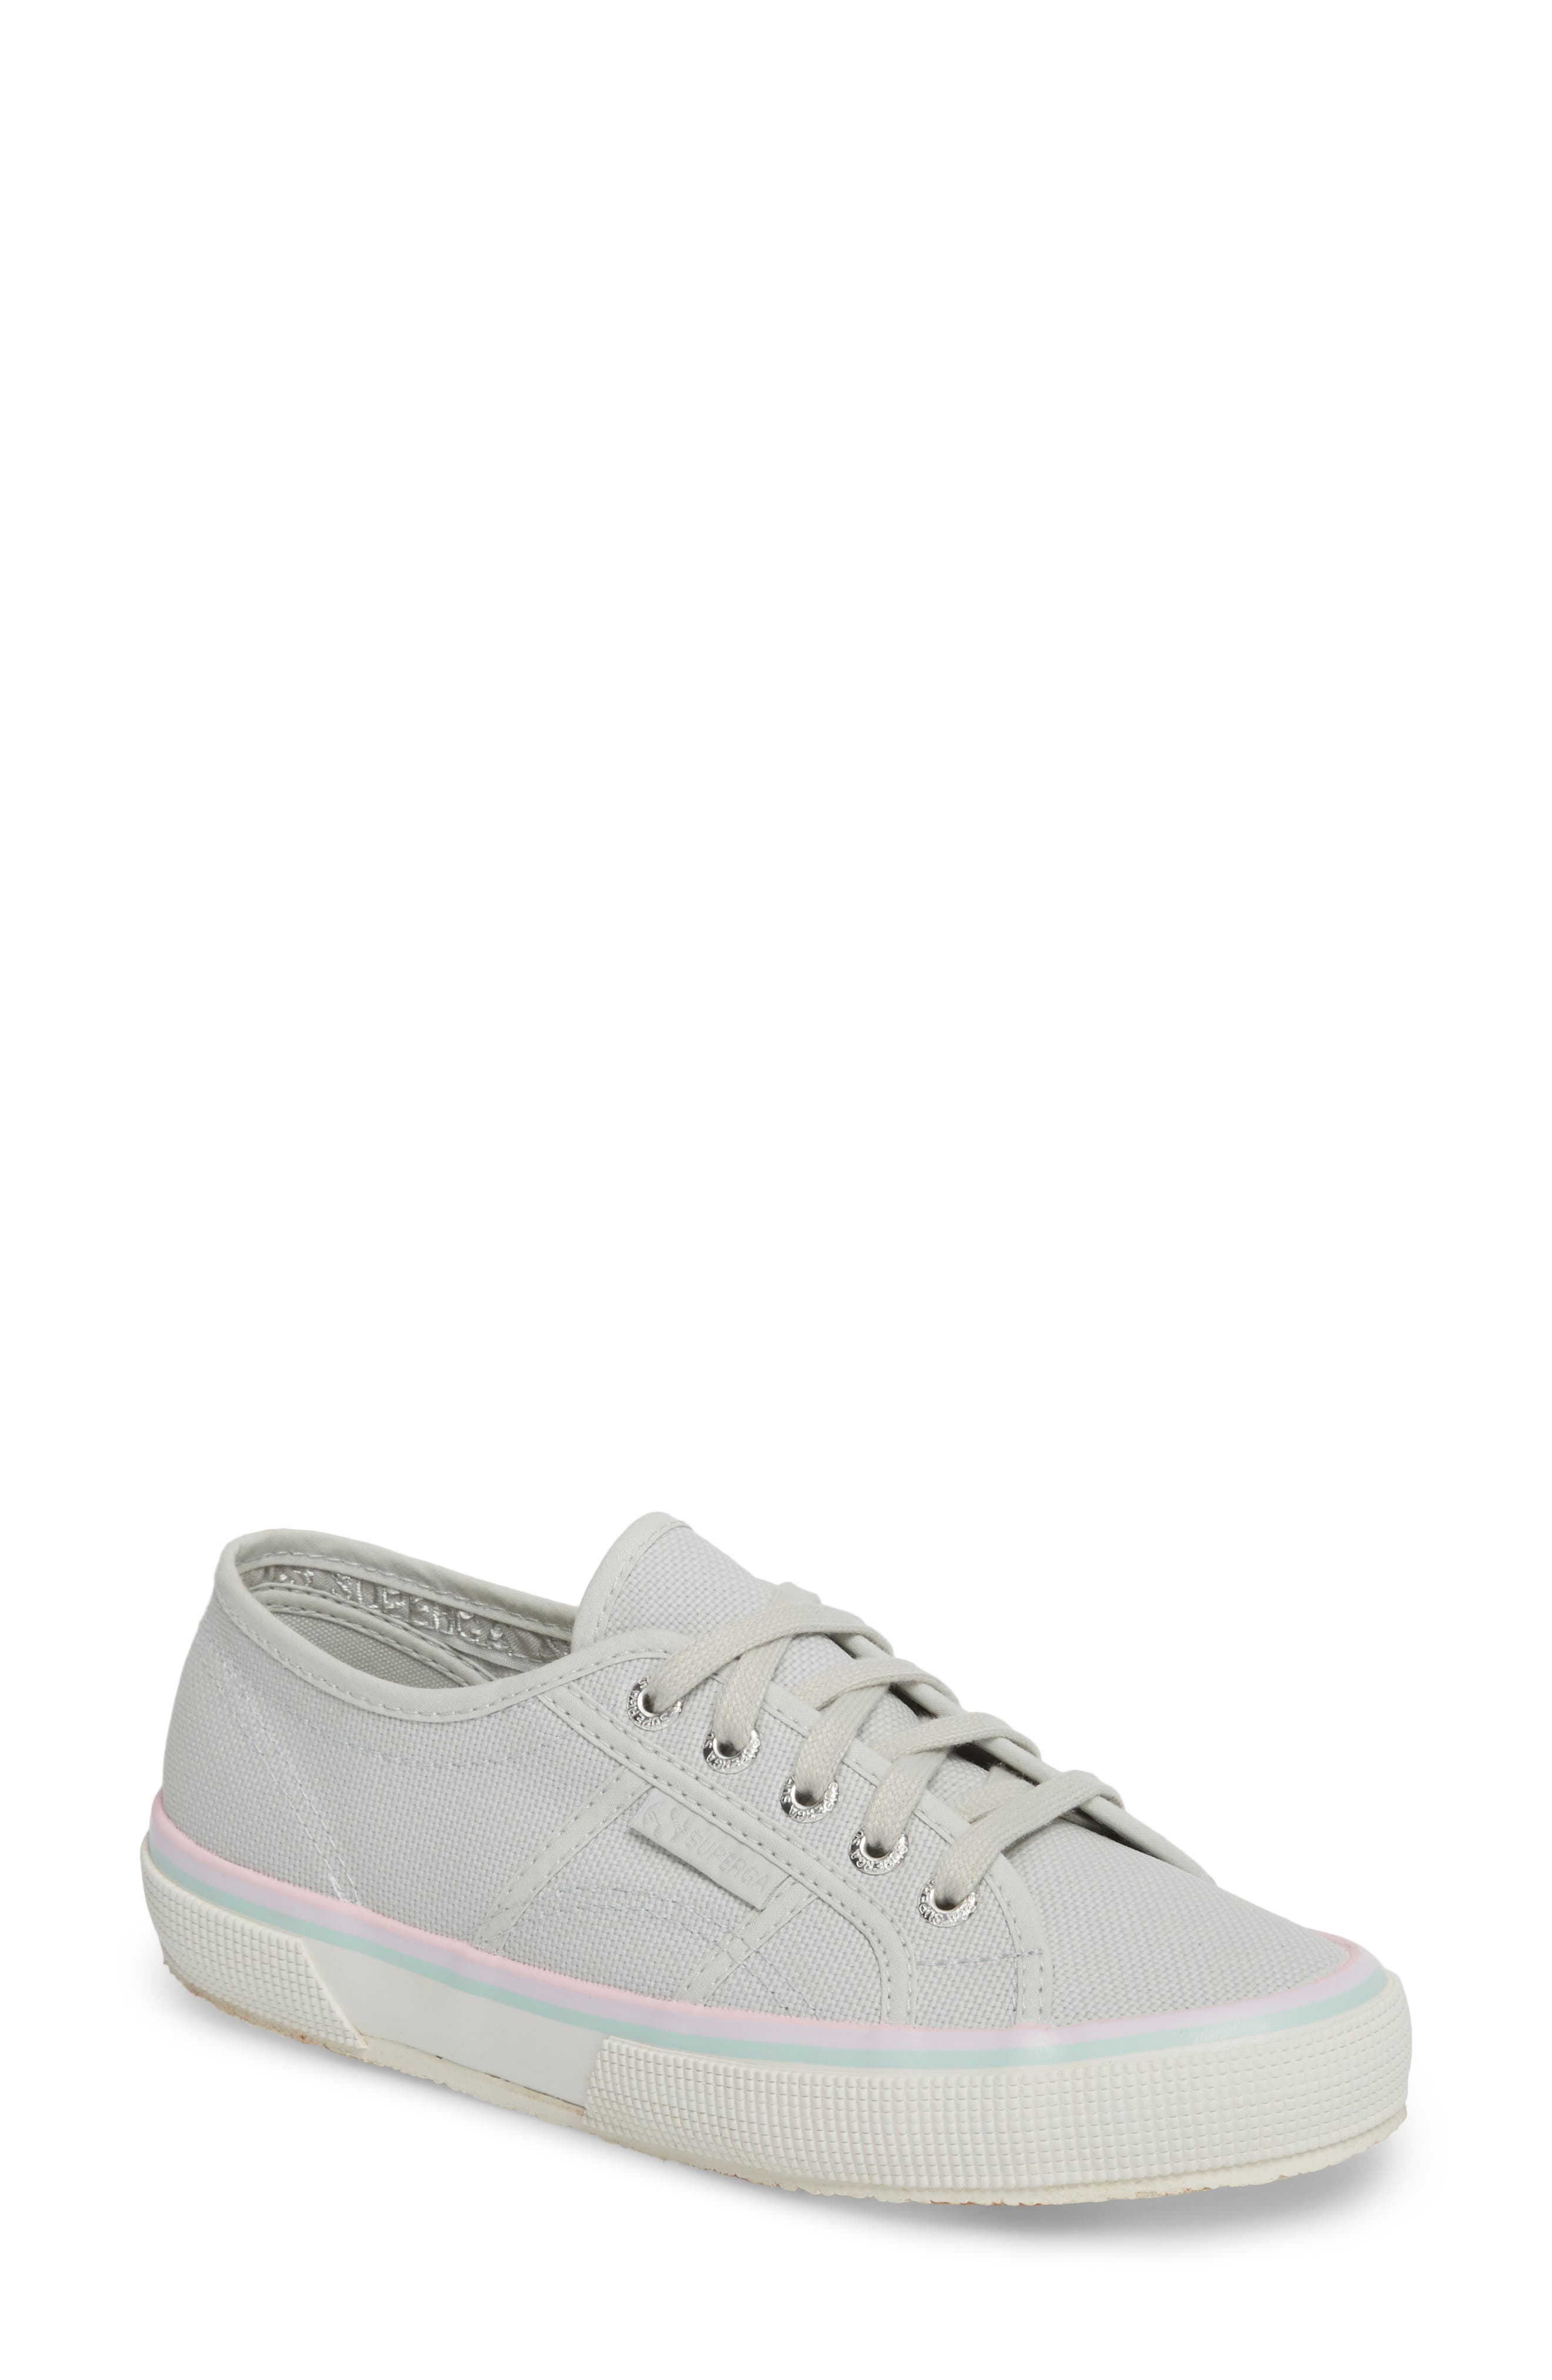 Best Superga Low-Top Trainers Womens Black AU:240570